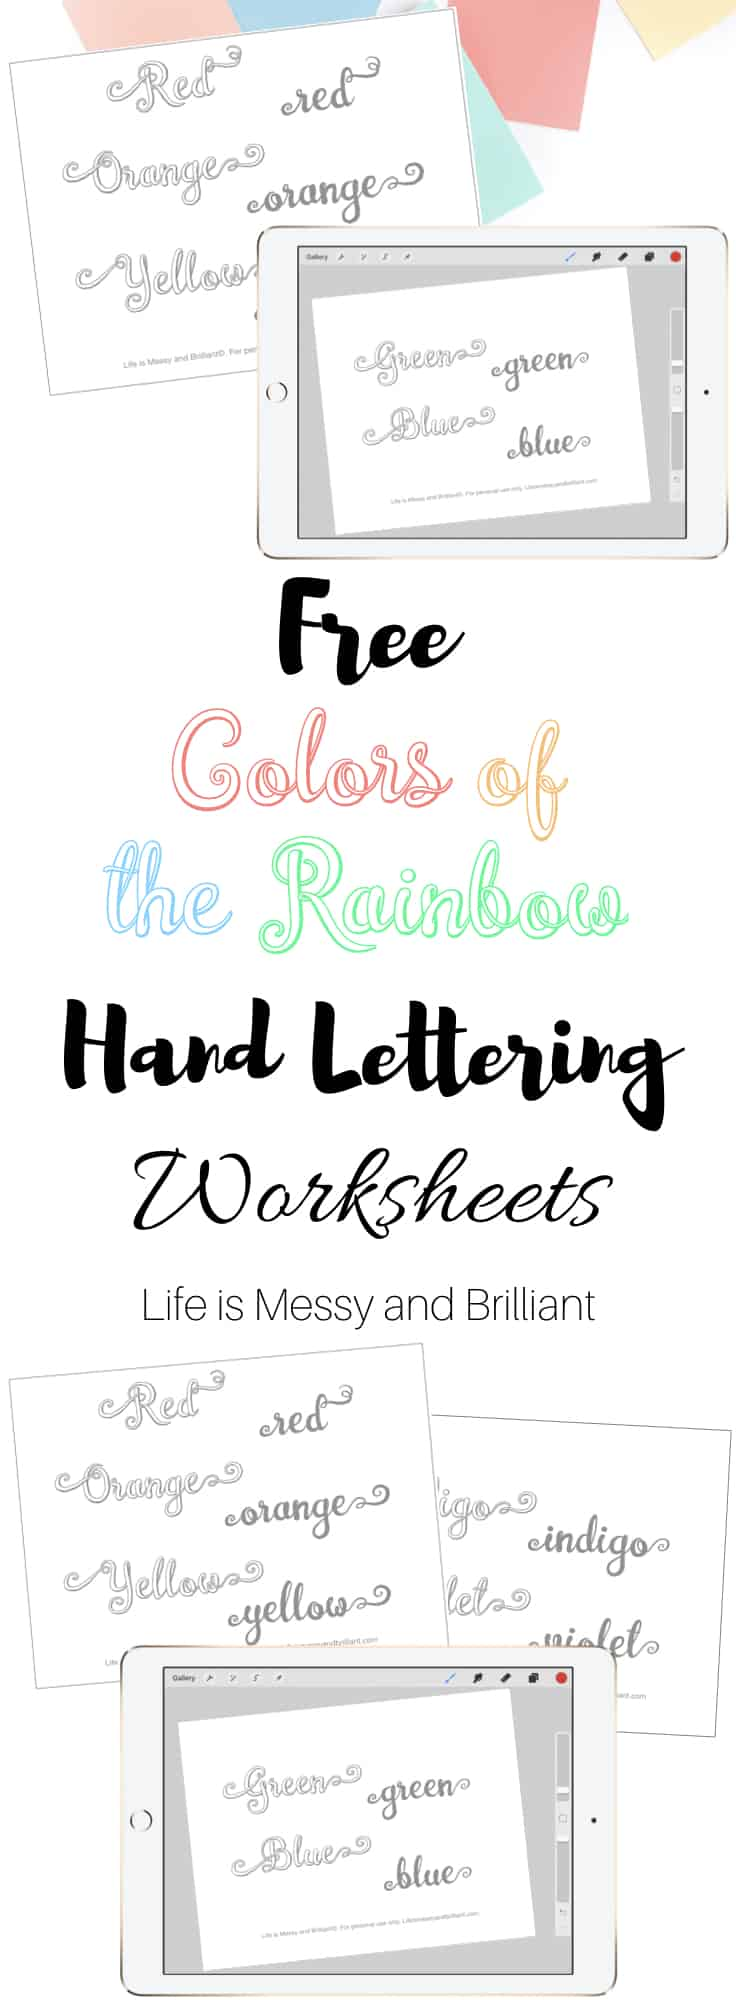 free colors of the rainbow hand lettering practice worksheets. Black Bedroom Furniture Sets. Home Design Ideas